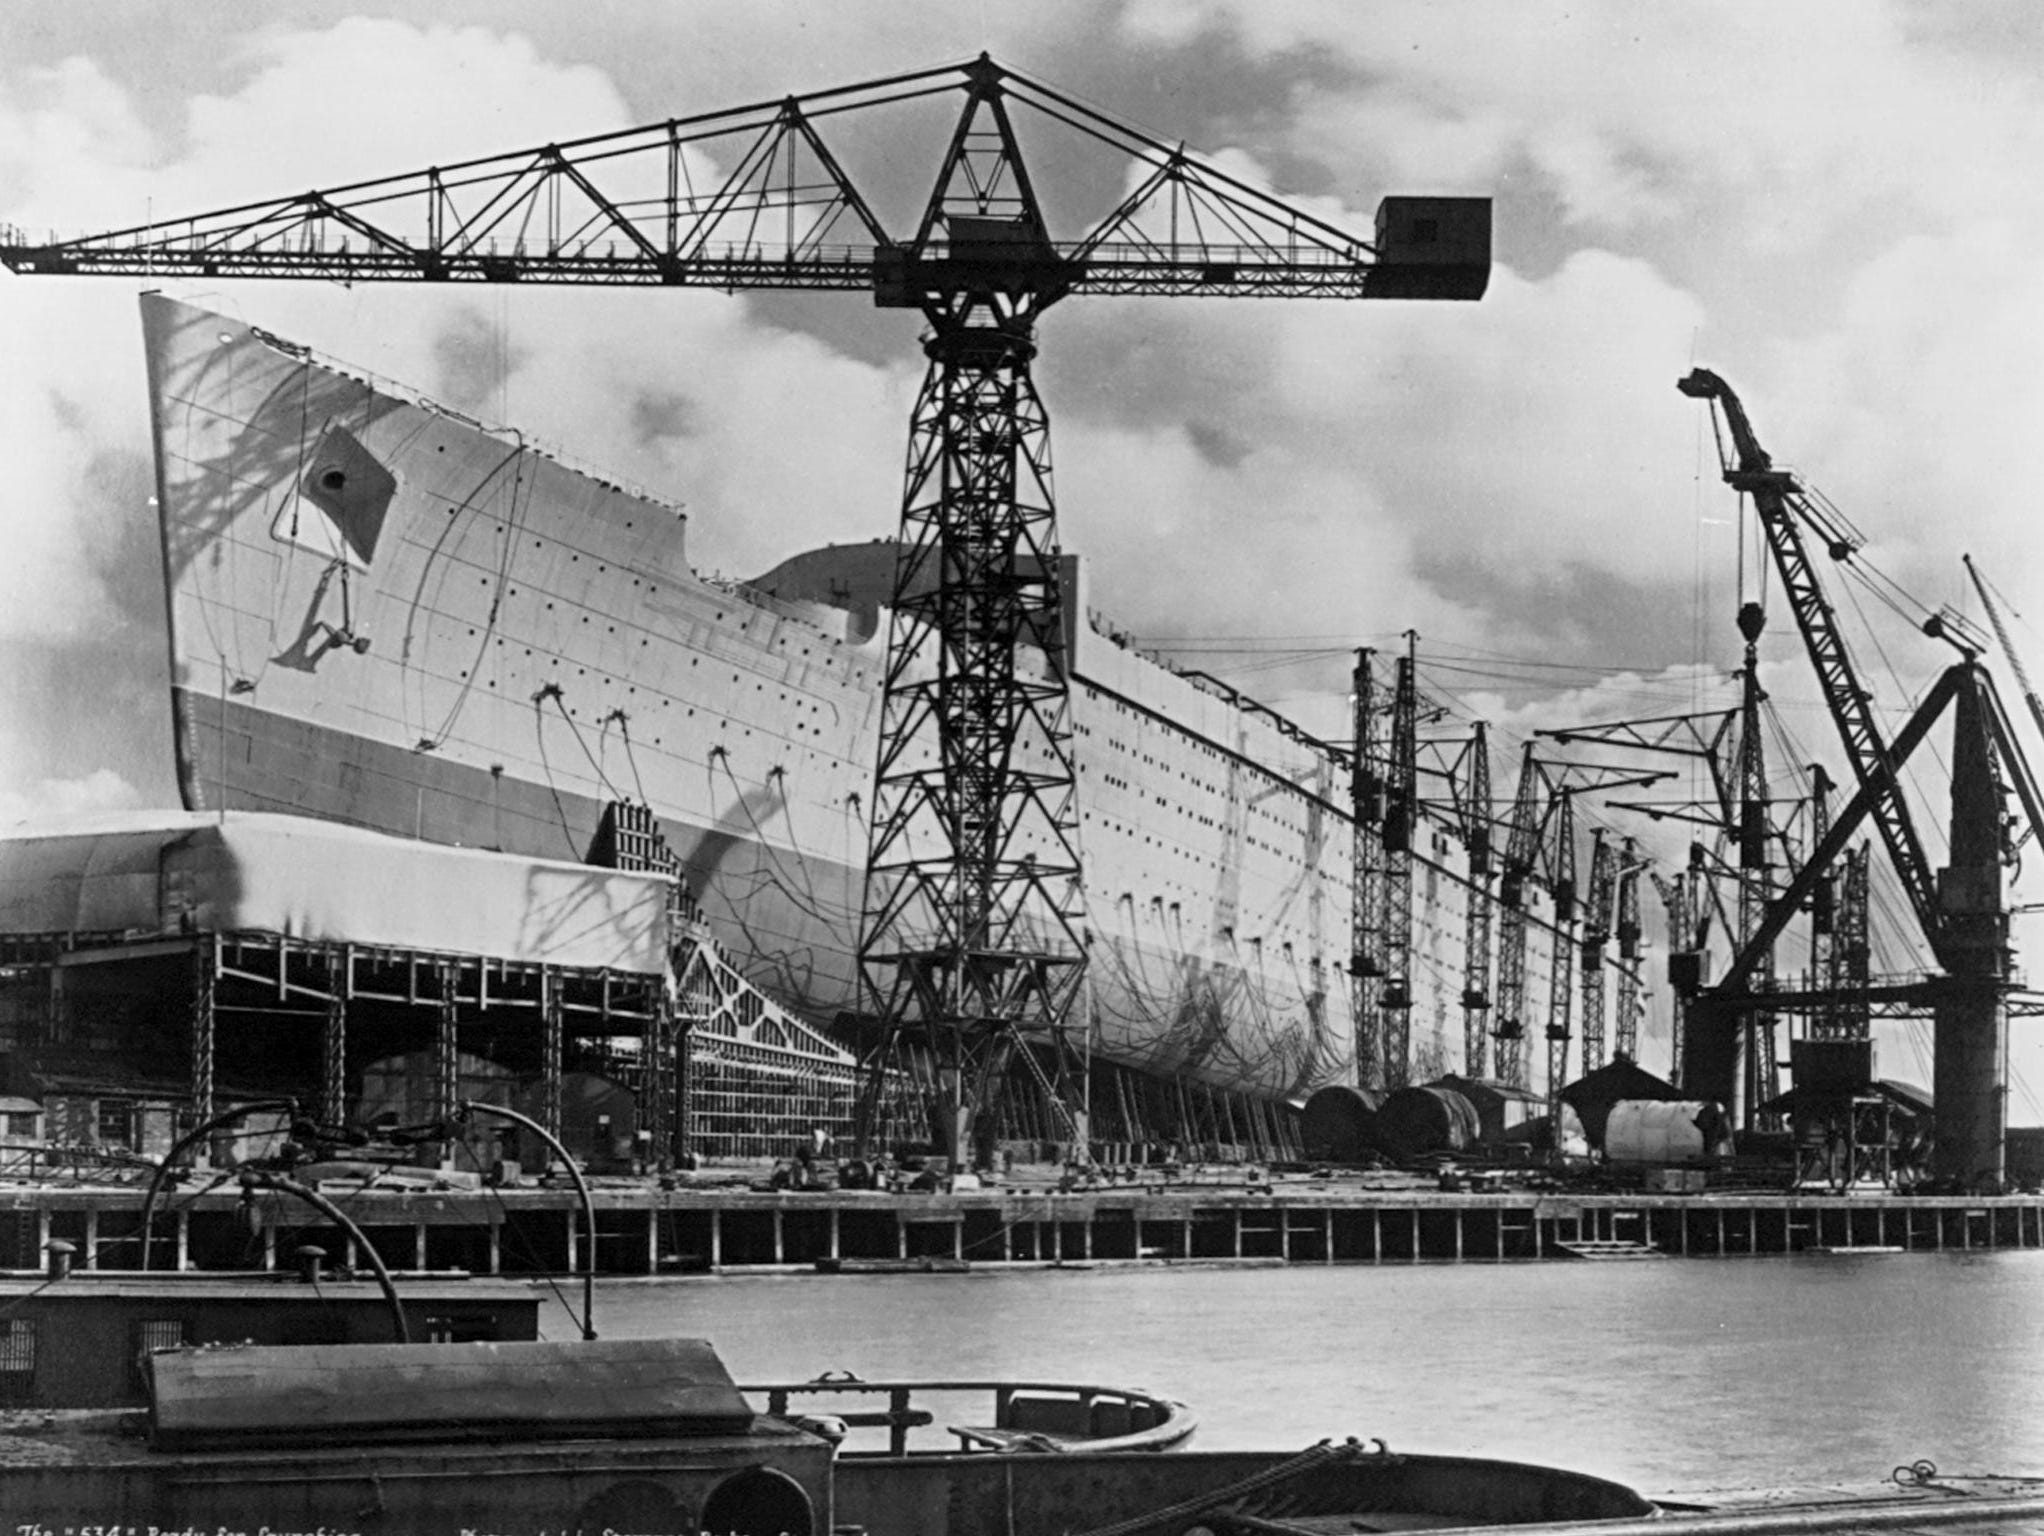 '534' sat on the stocks for over two years until a government loan contingent on the merger of struggling rivals Cunard and White Star Lines was granted. Many decried the loan as wasteful but the ship would eventually more than earn its keep.